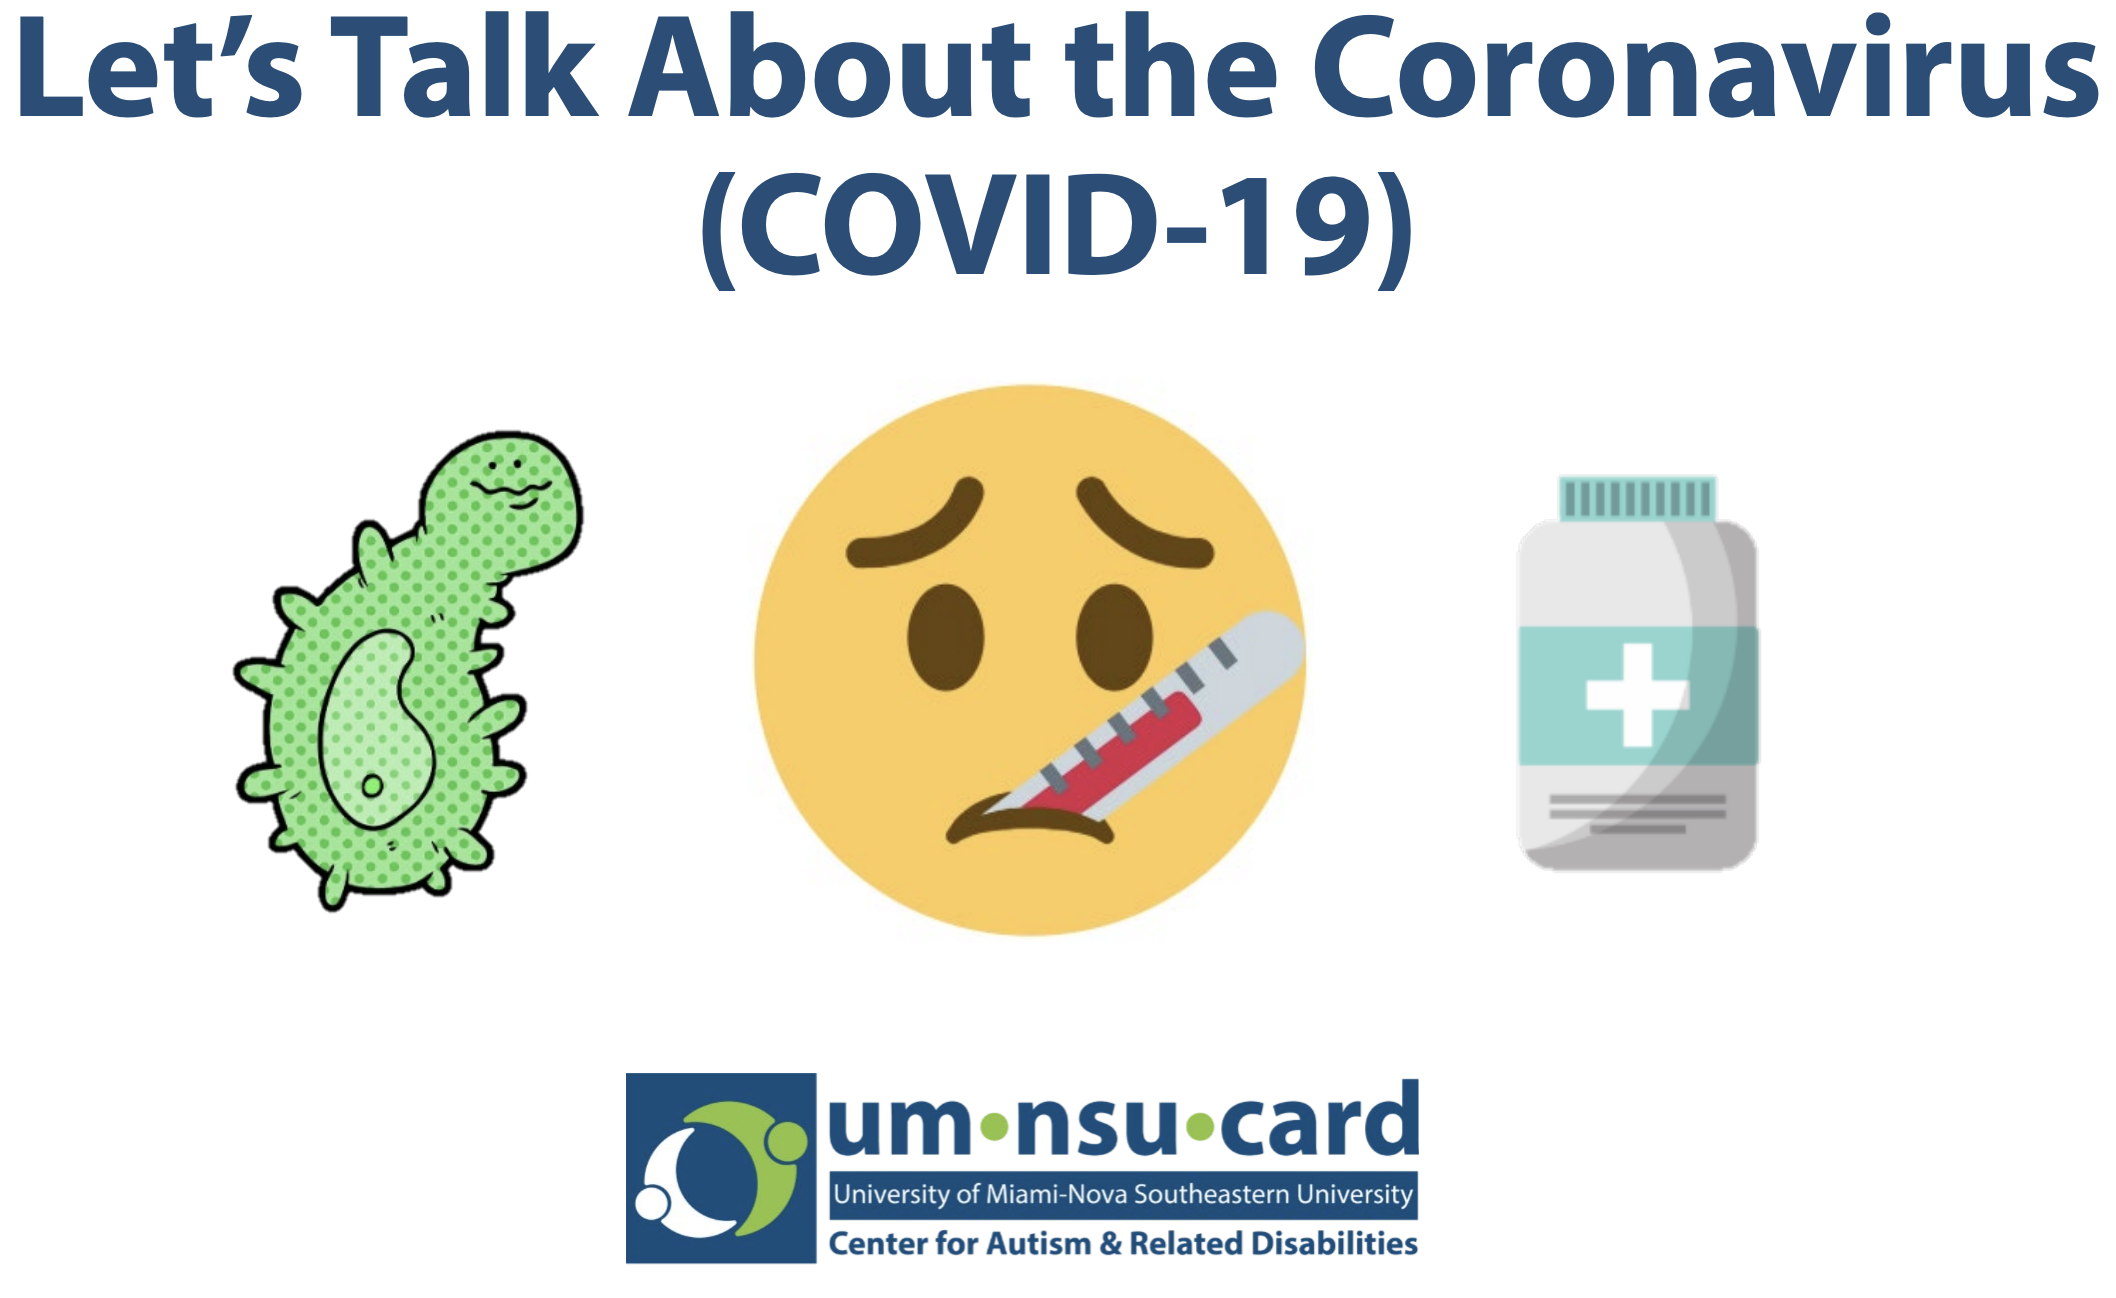 Let's Talk About the Coronavirus (COVID-19)